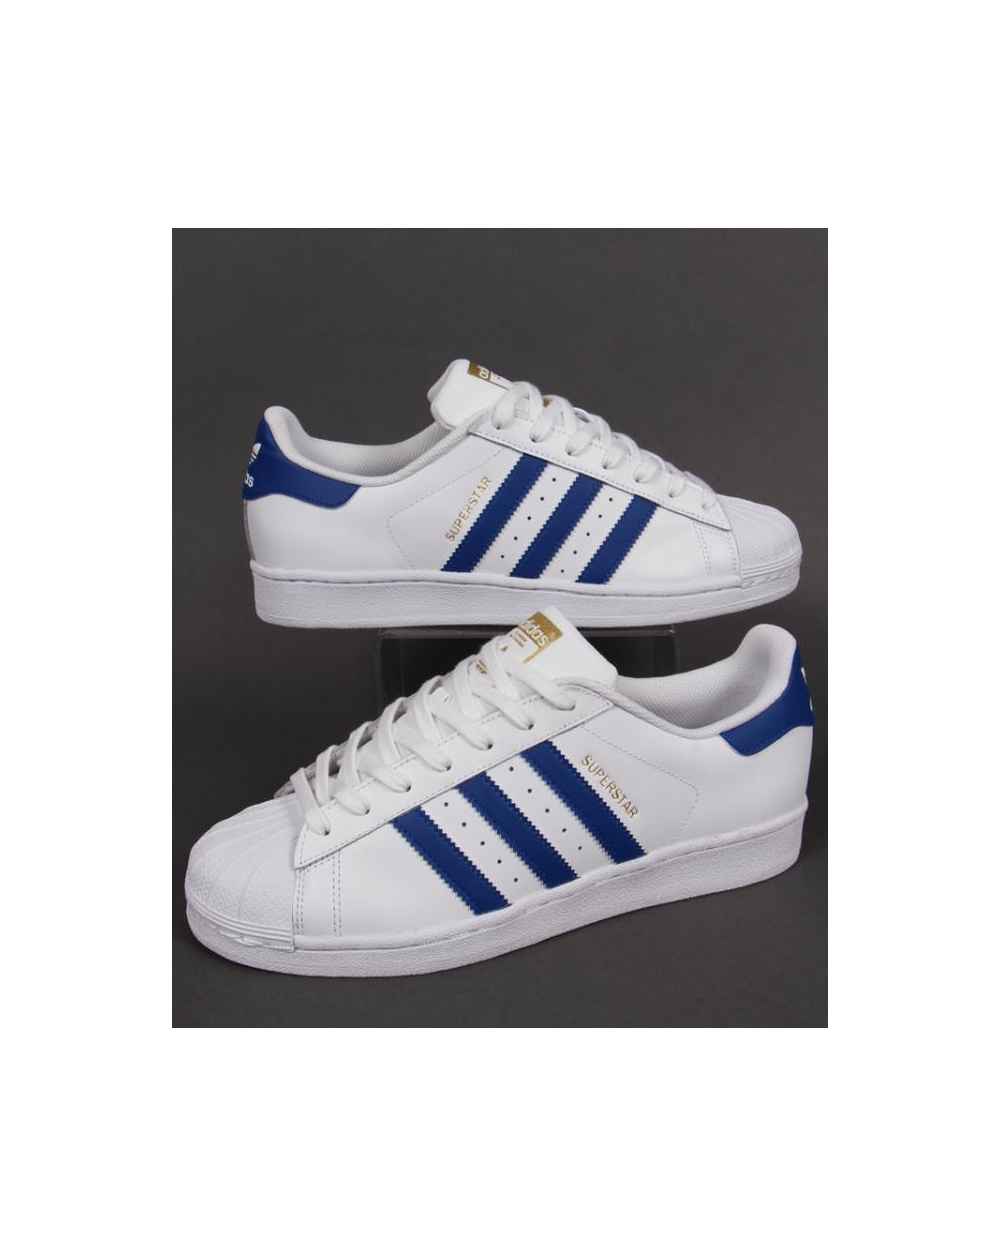 844f9310bea Adidas Superstar Foundation Trainers White royal Blue